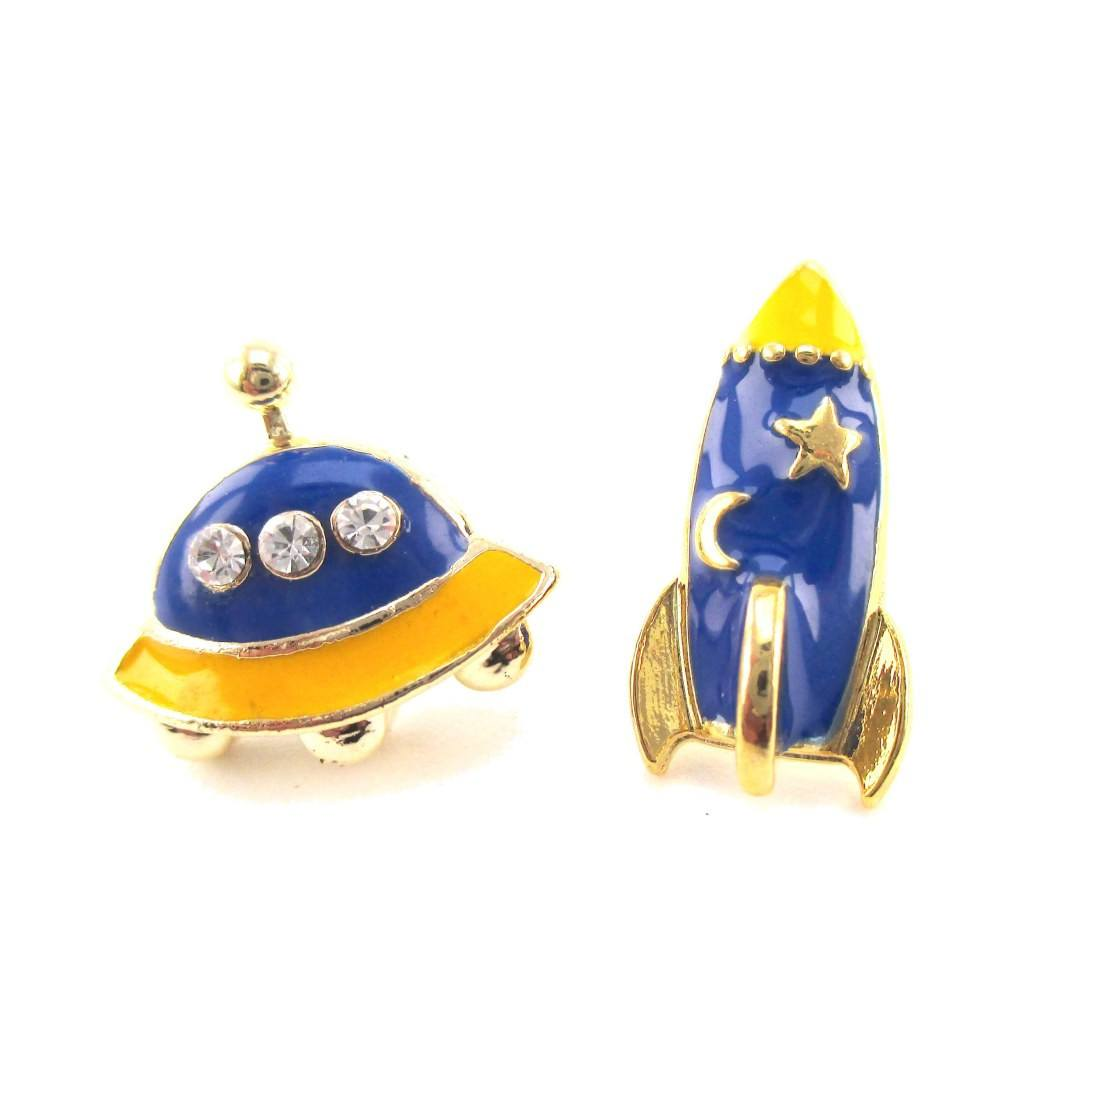 Alien and UFO Spaceship Shaped Space Themed Stud Earrings in Blue